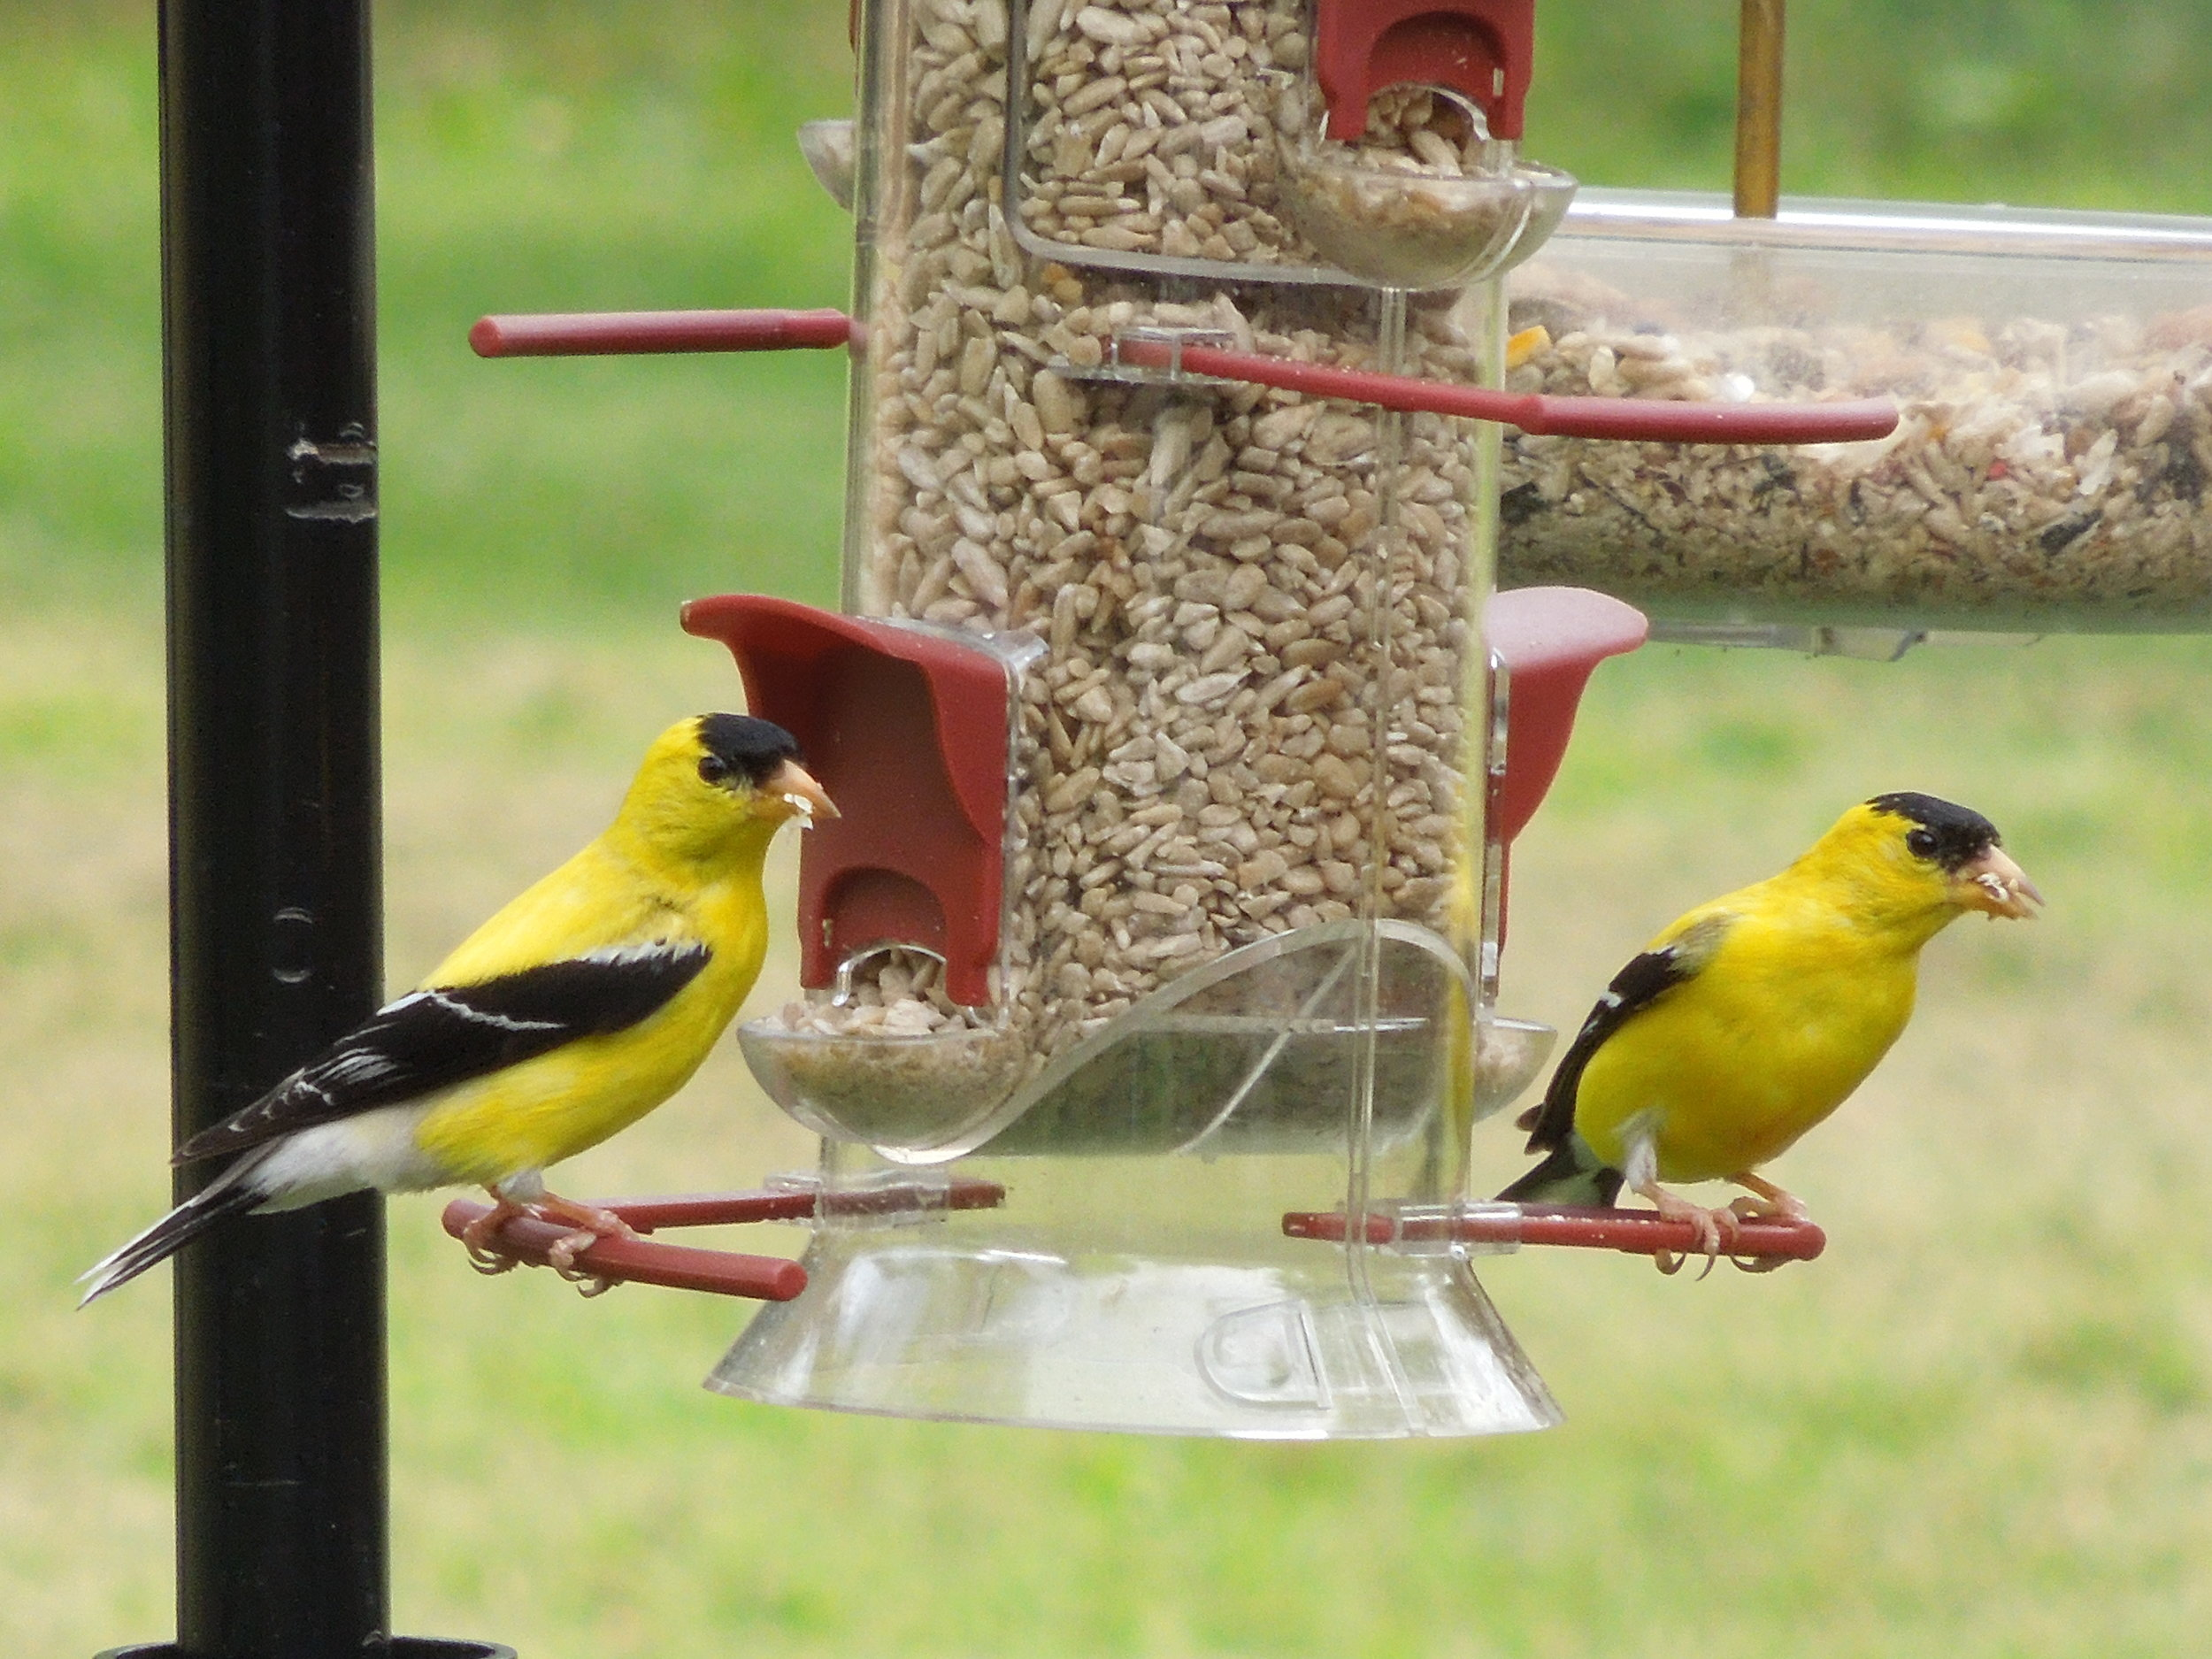 American Goldfinch. Photo by Heather W.